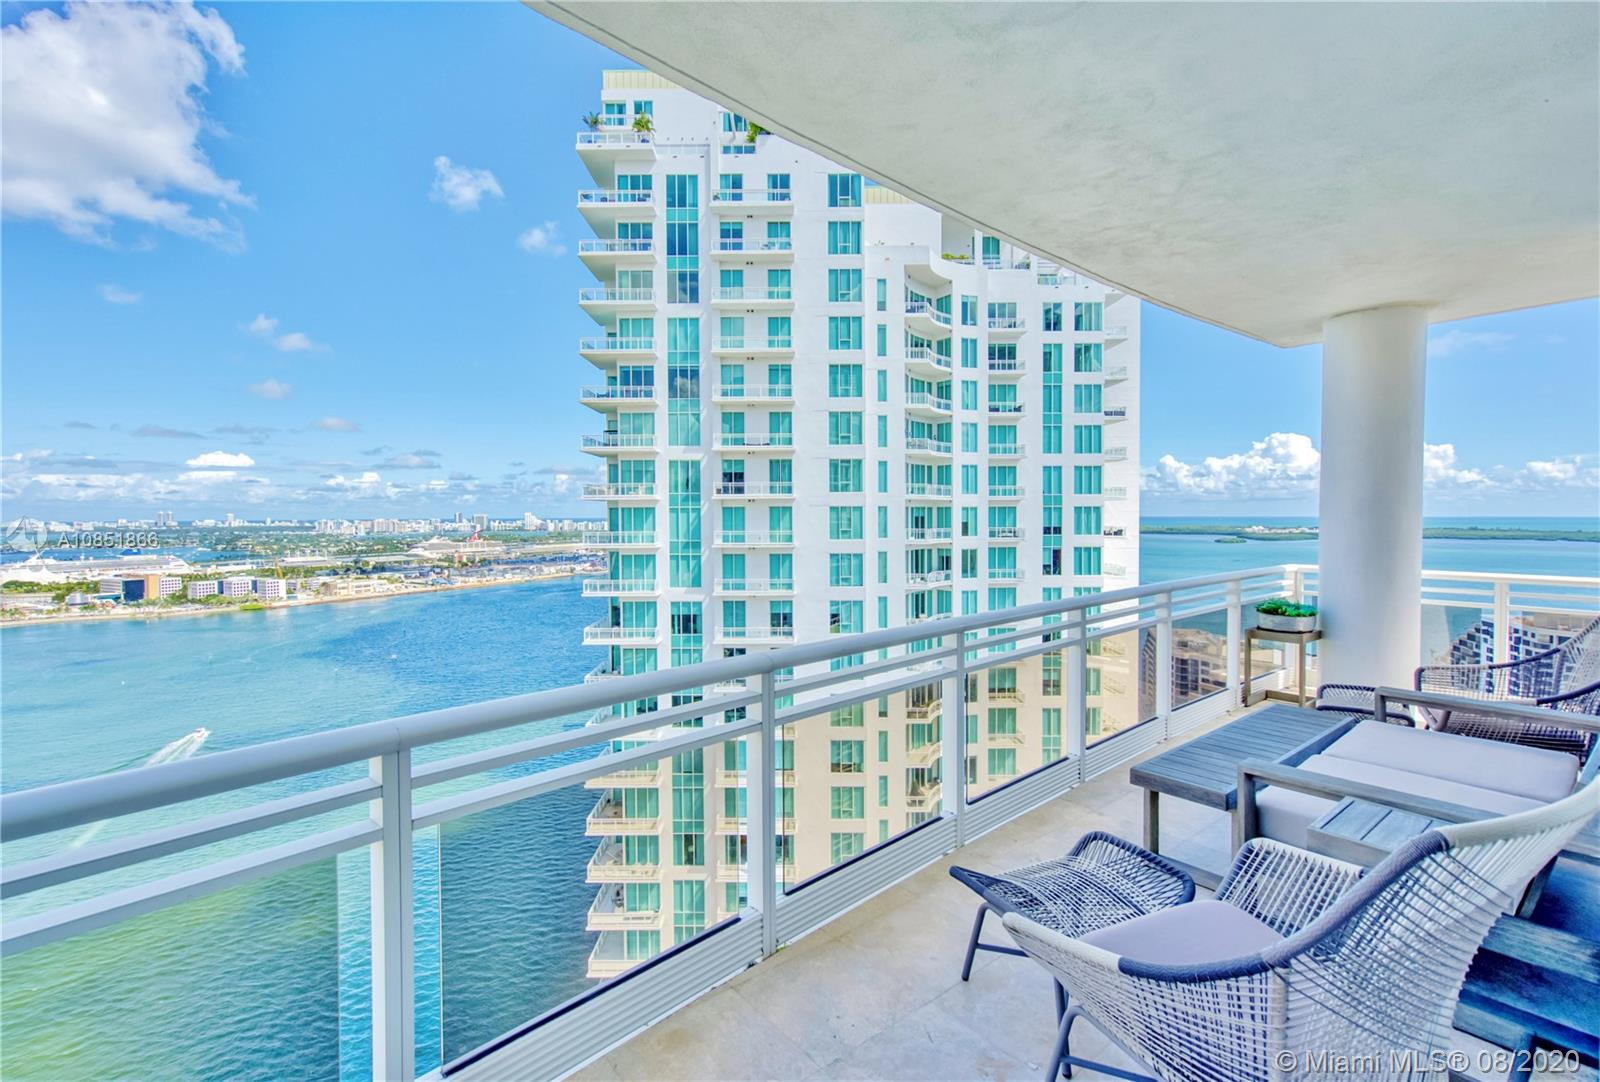 Carbonell #3408 - 901 Brickell Key Blvd #3408, Miami, FL 33131